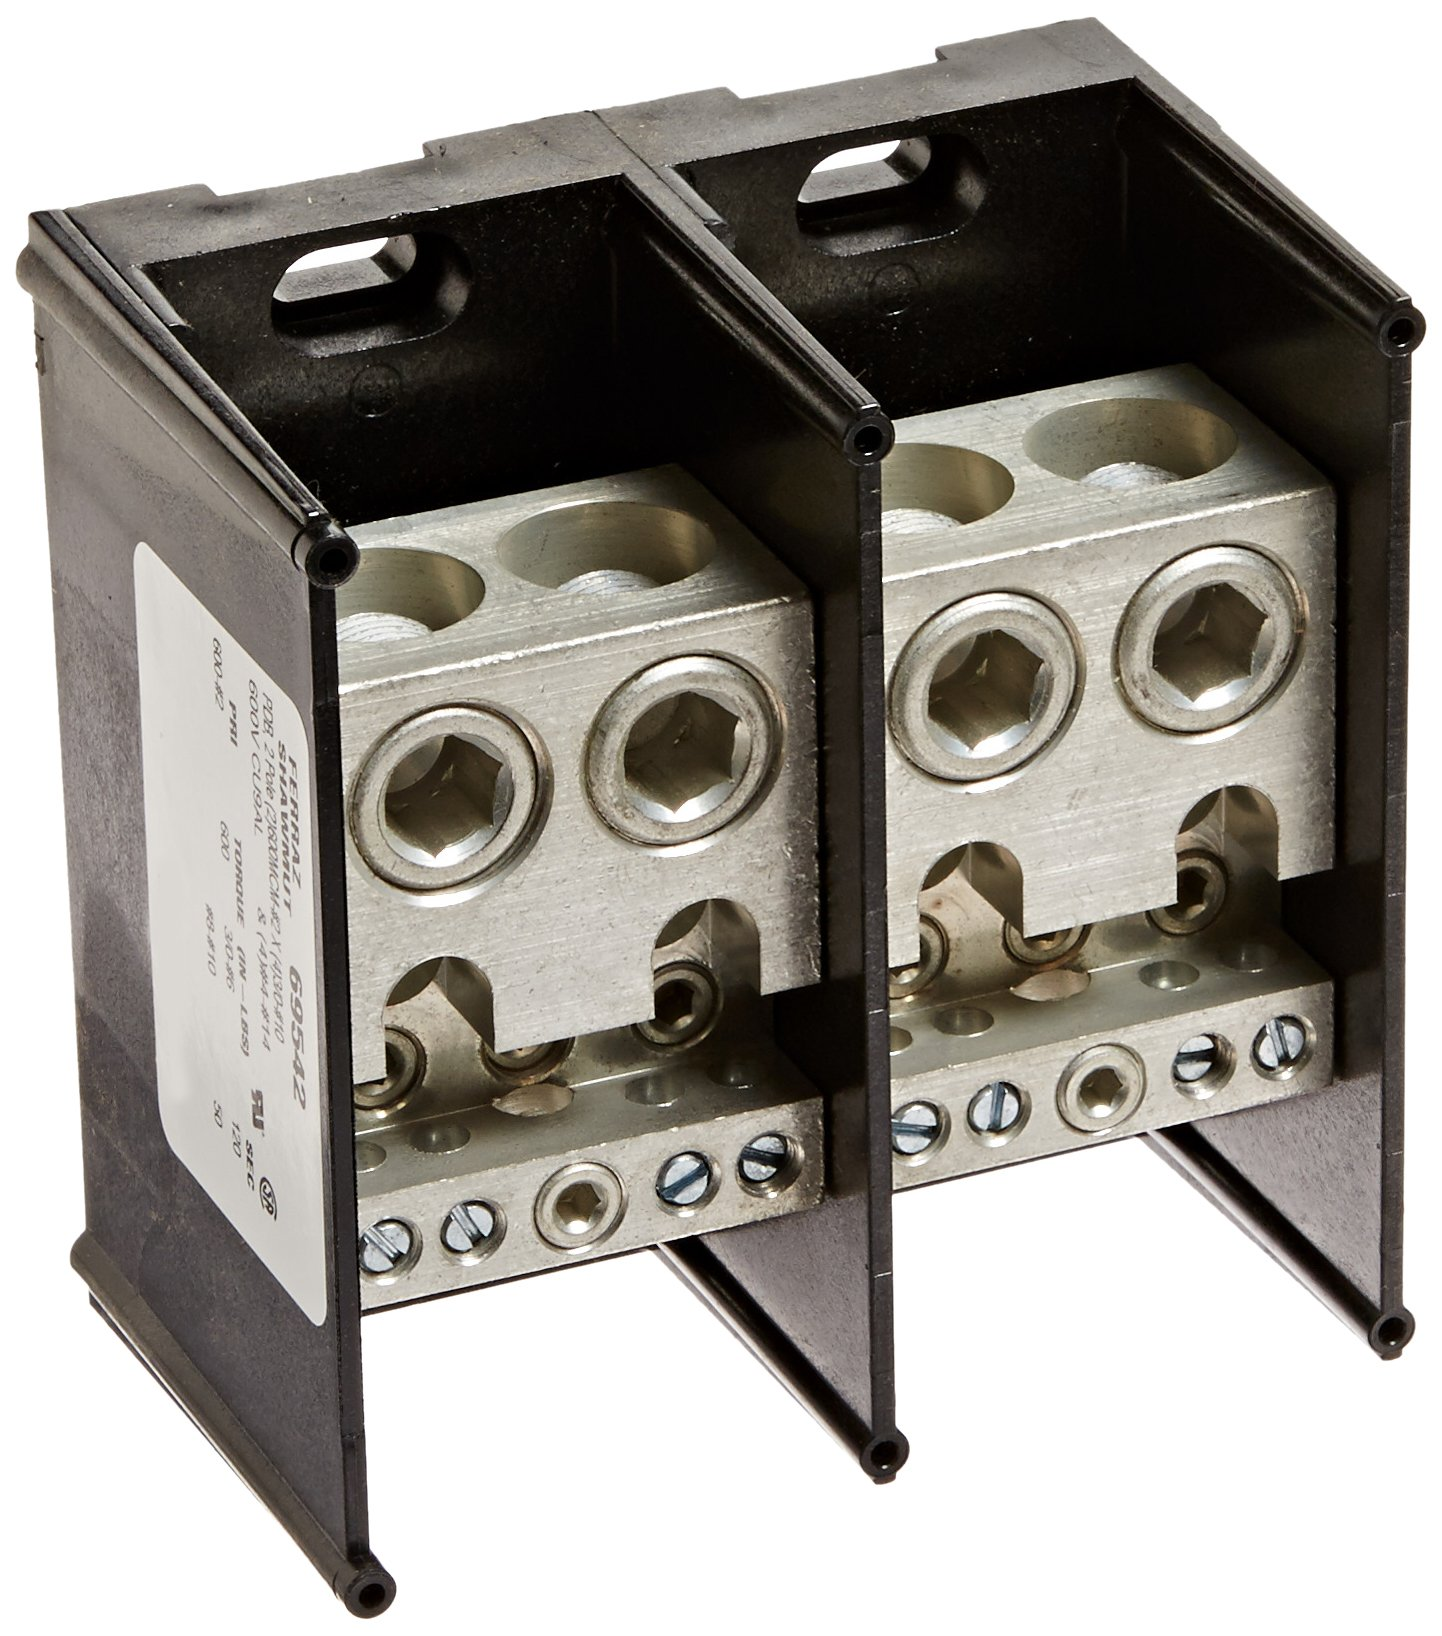 Mersen 69000 Aluminum Large Open Style Box to Stud PDB with 2-Pole and 4 Stud, #14-4 and 3/0-#10 Wire Size, 840 Ampere by Mersen